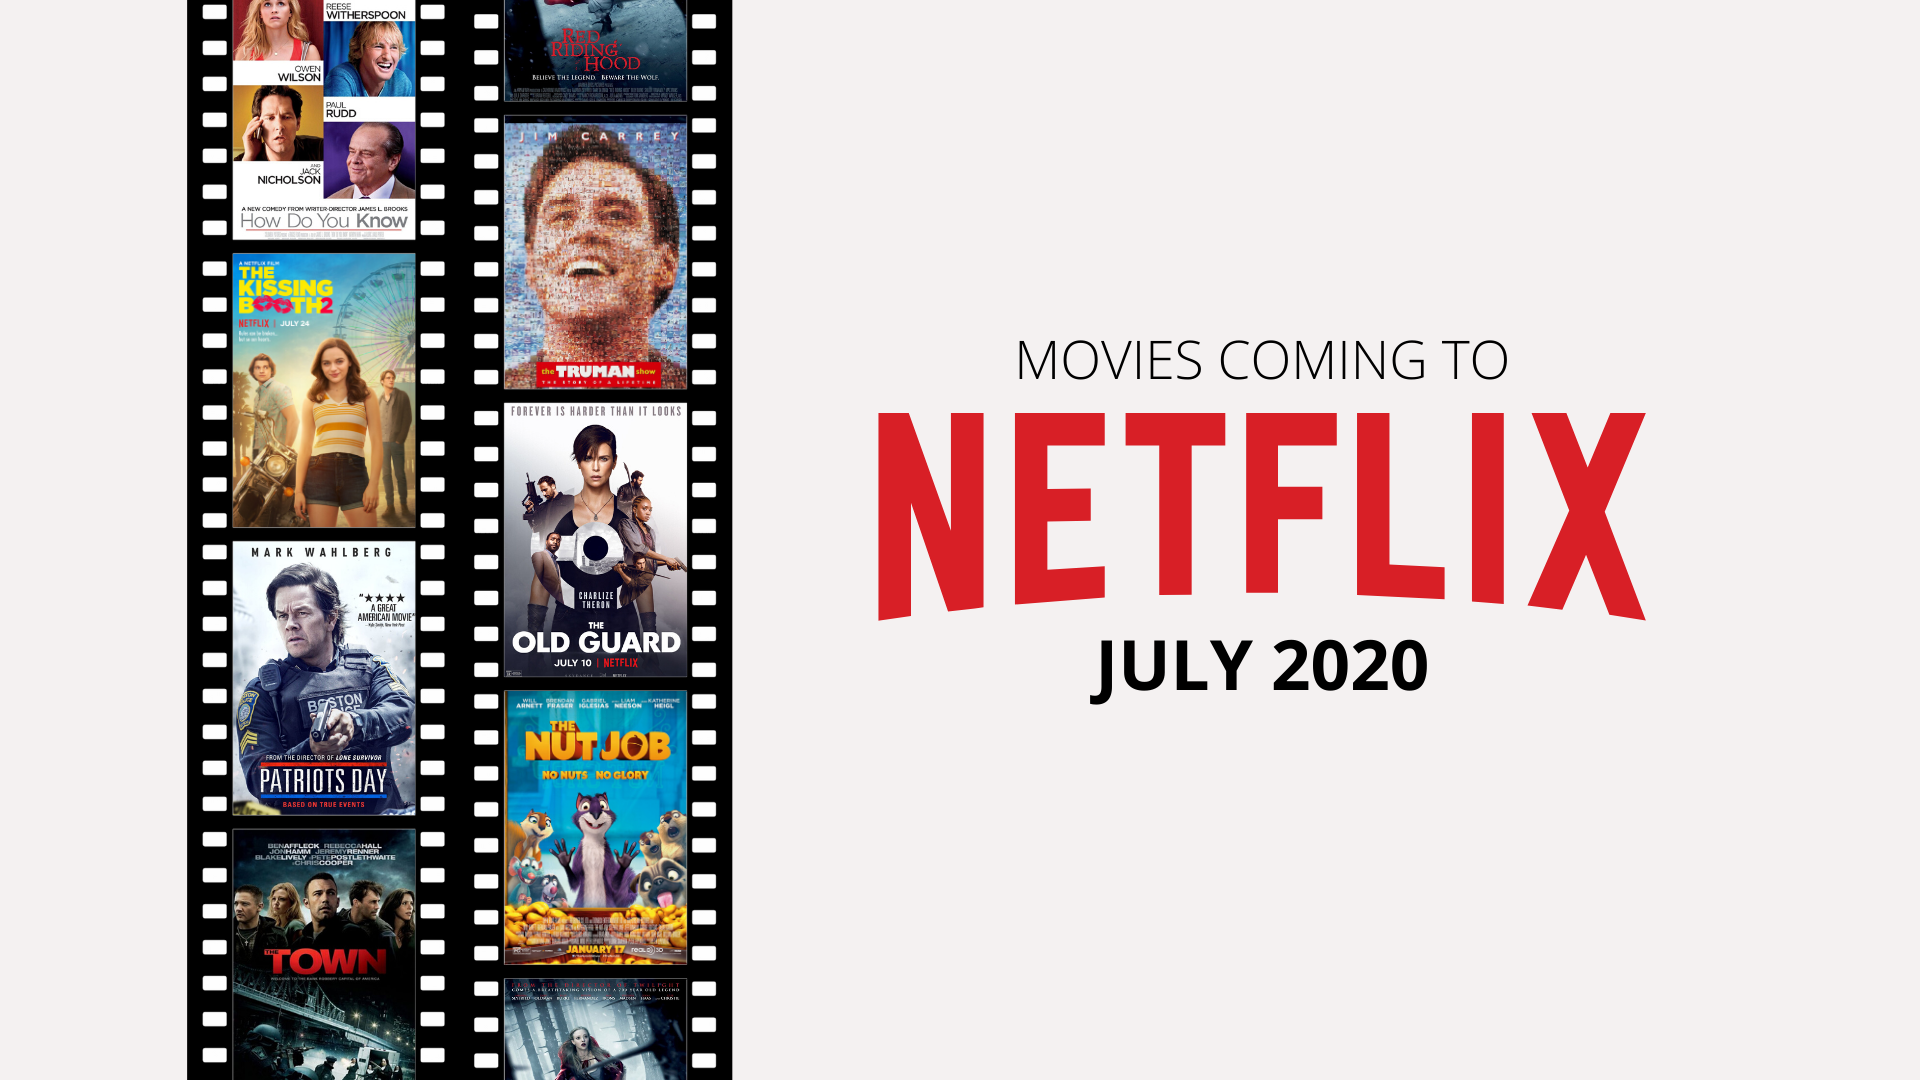 What films are coming to Netflix U.K. and U.S in July 2020